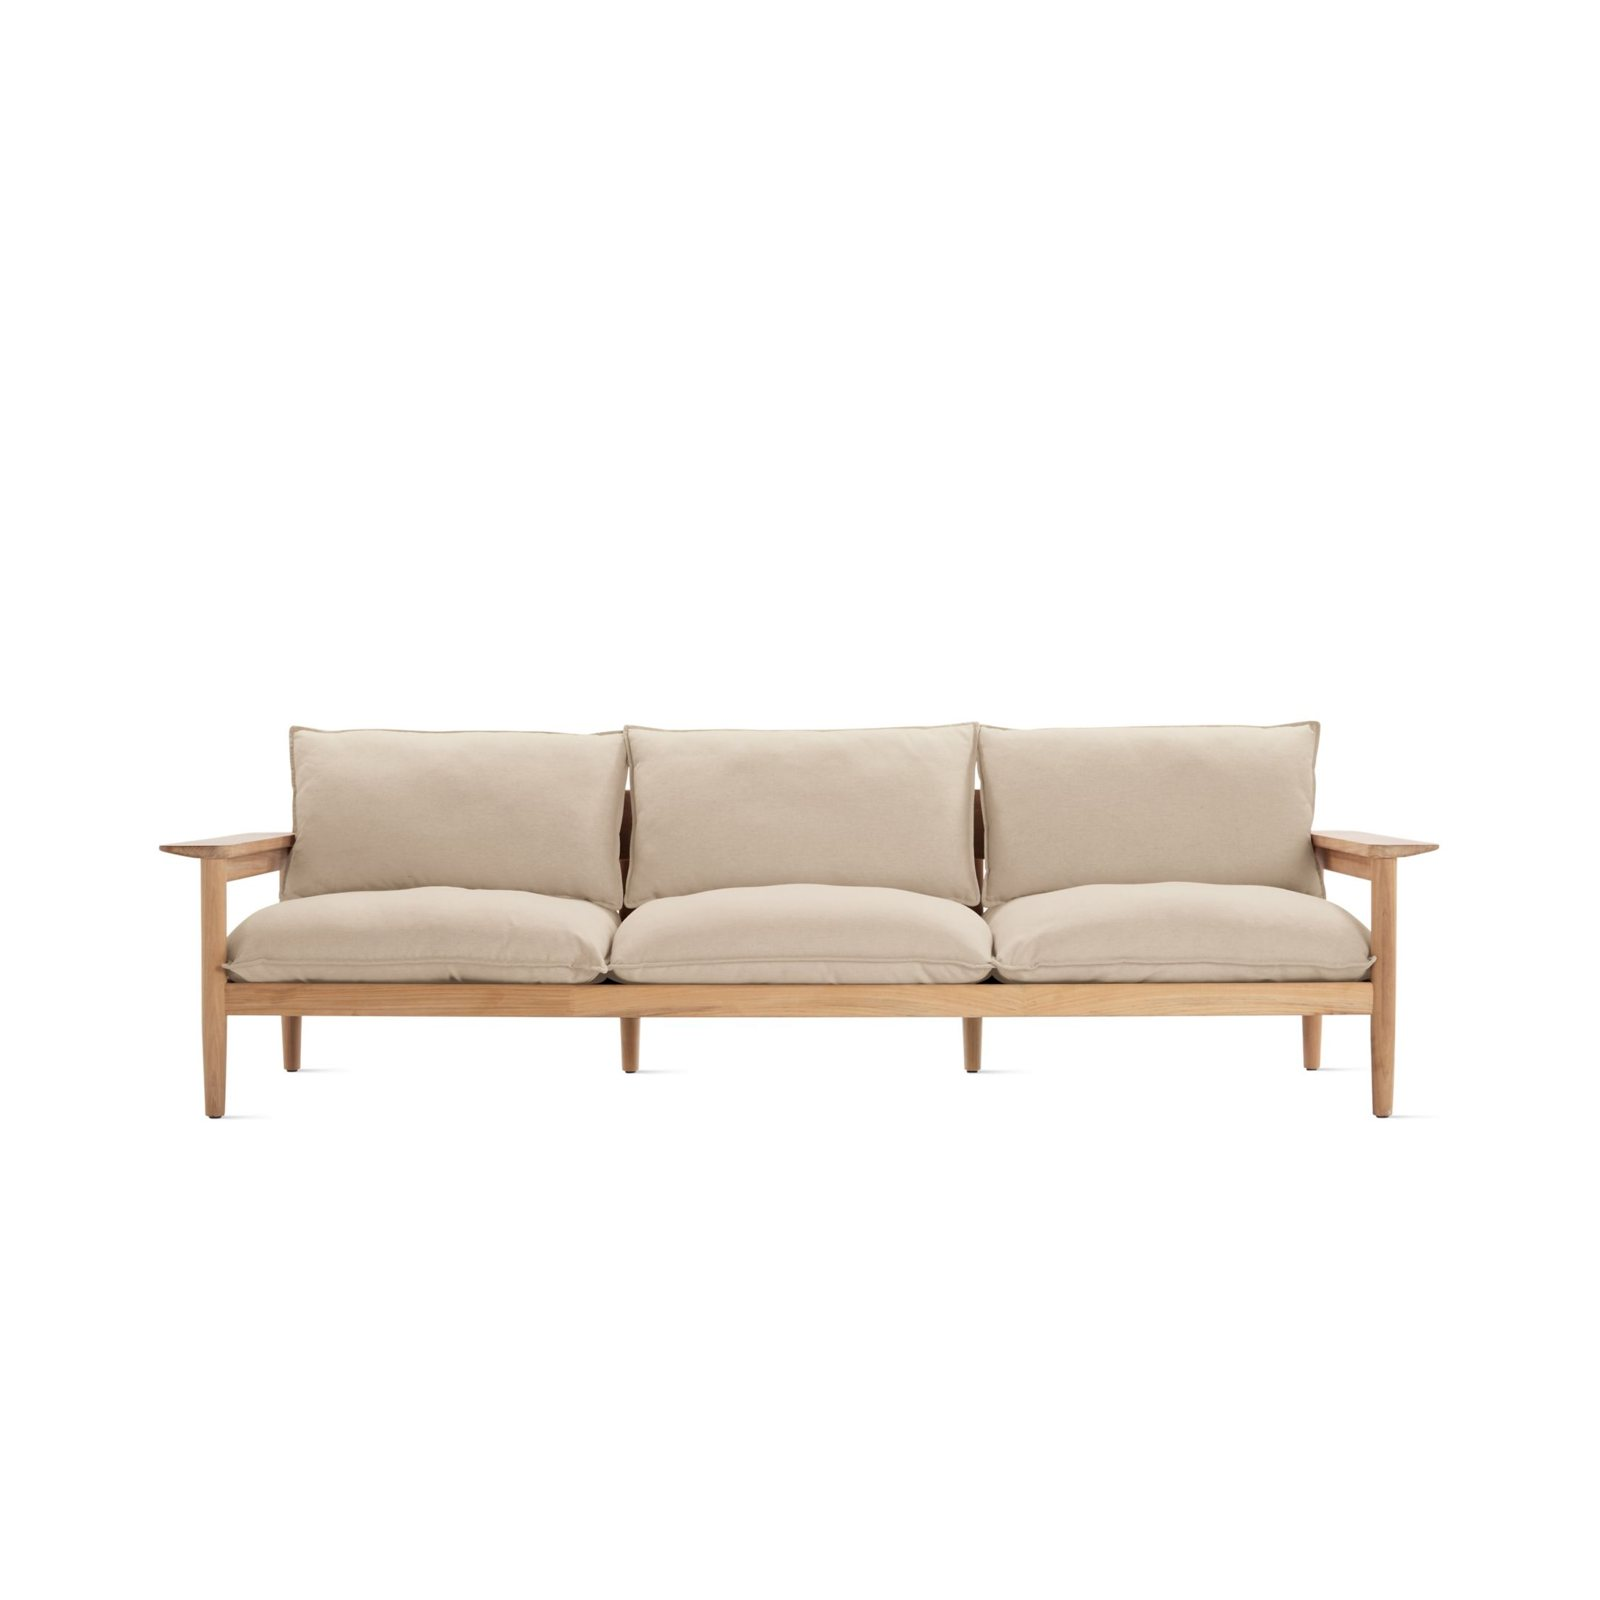 Terassi ThreeSeater Sofa by Studio Tolvanen for Design Within Reach